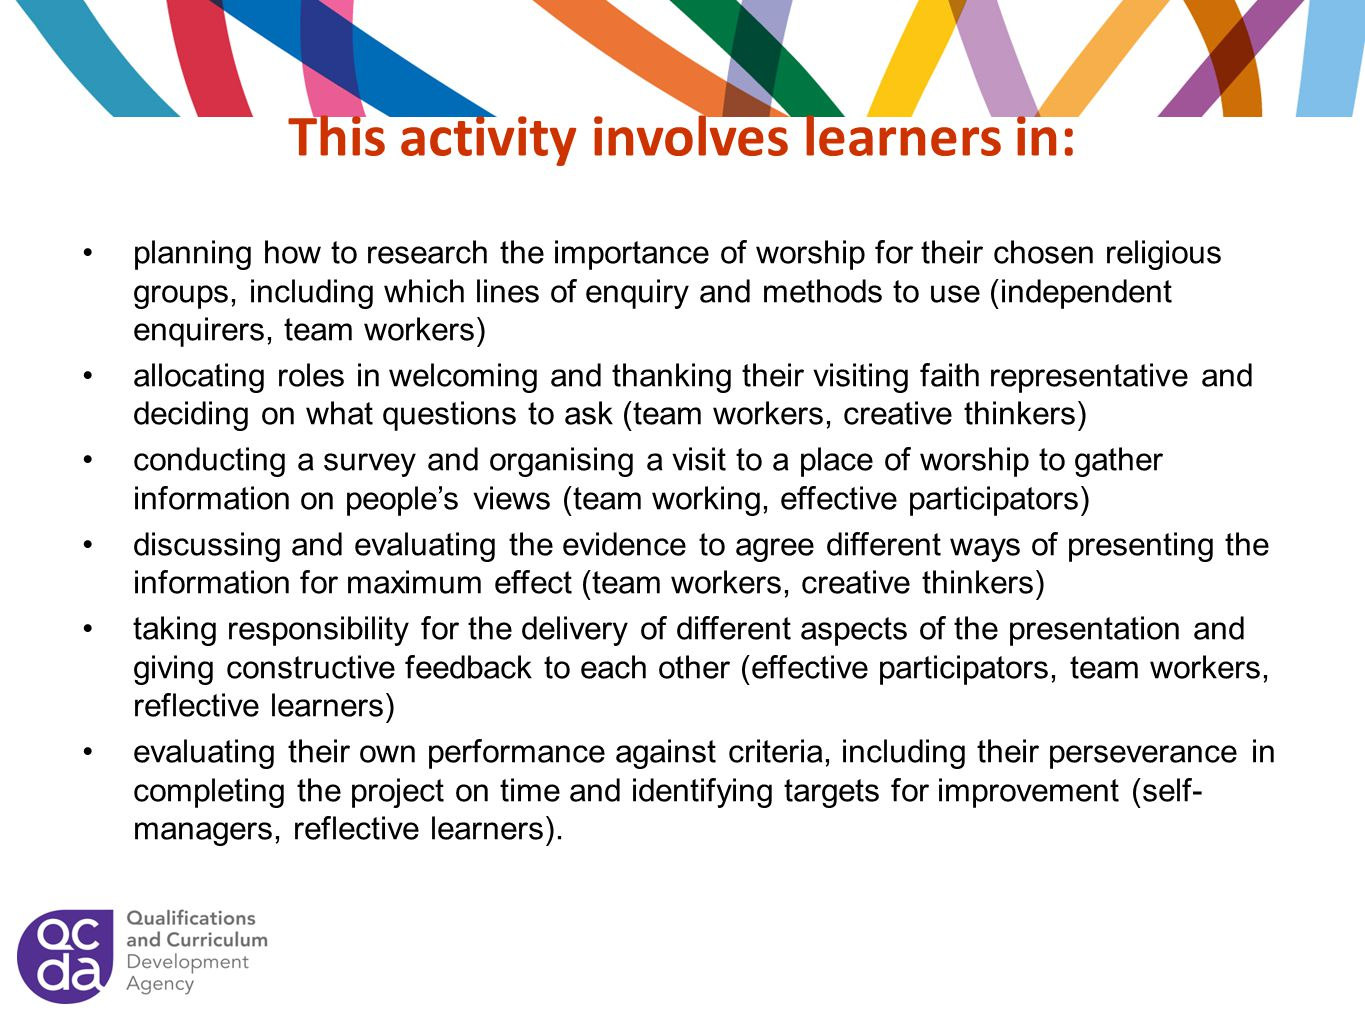 This activity involves learners in: